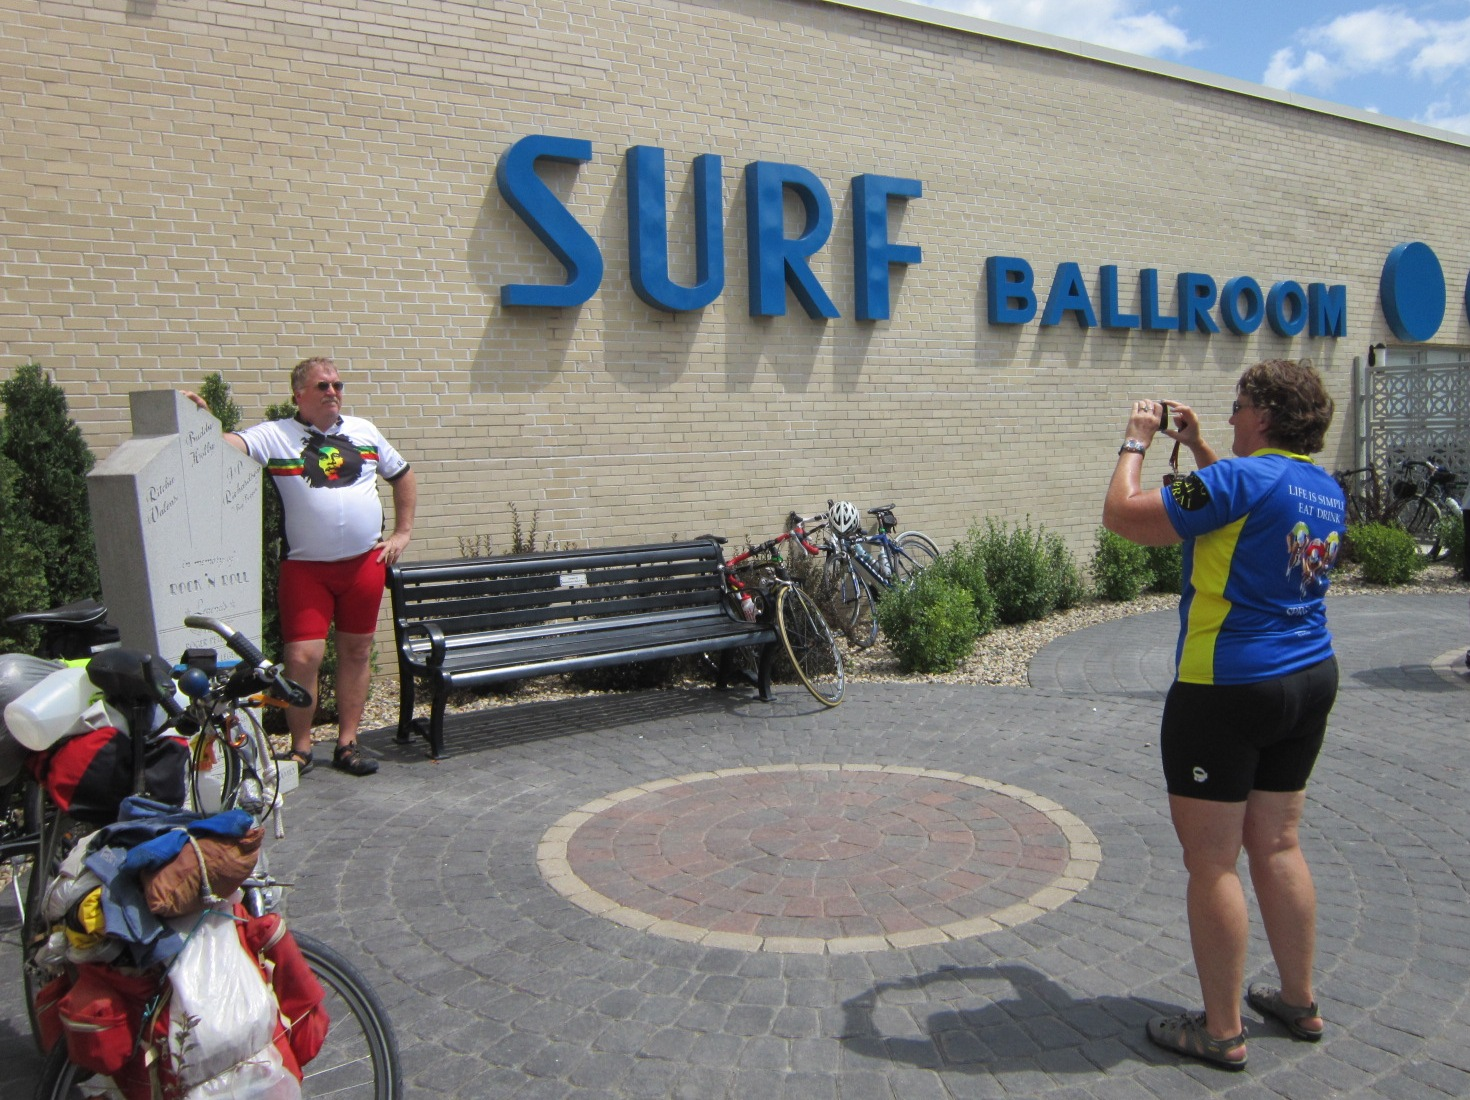 Bob & Karen Brooks Moline IL at Surf monument July 23.JPG